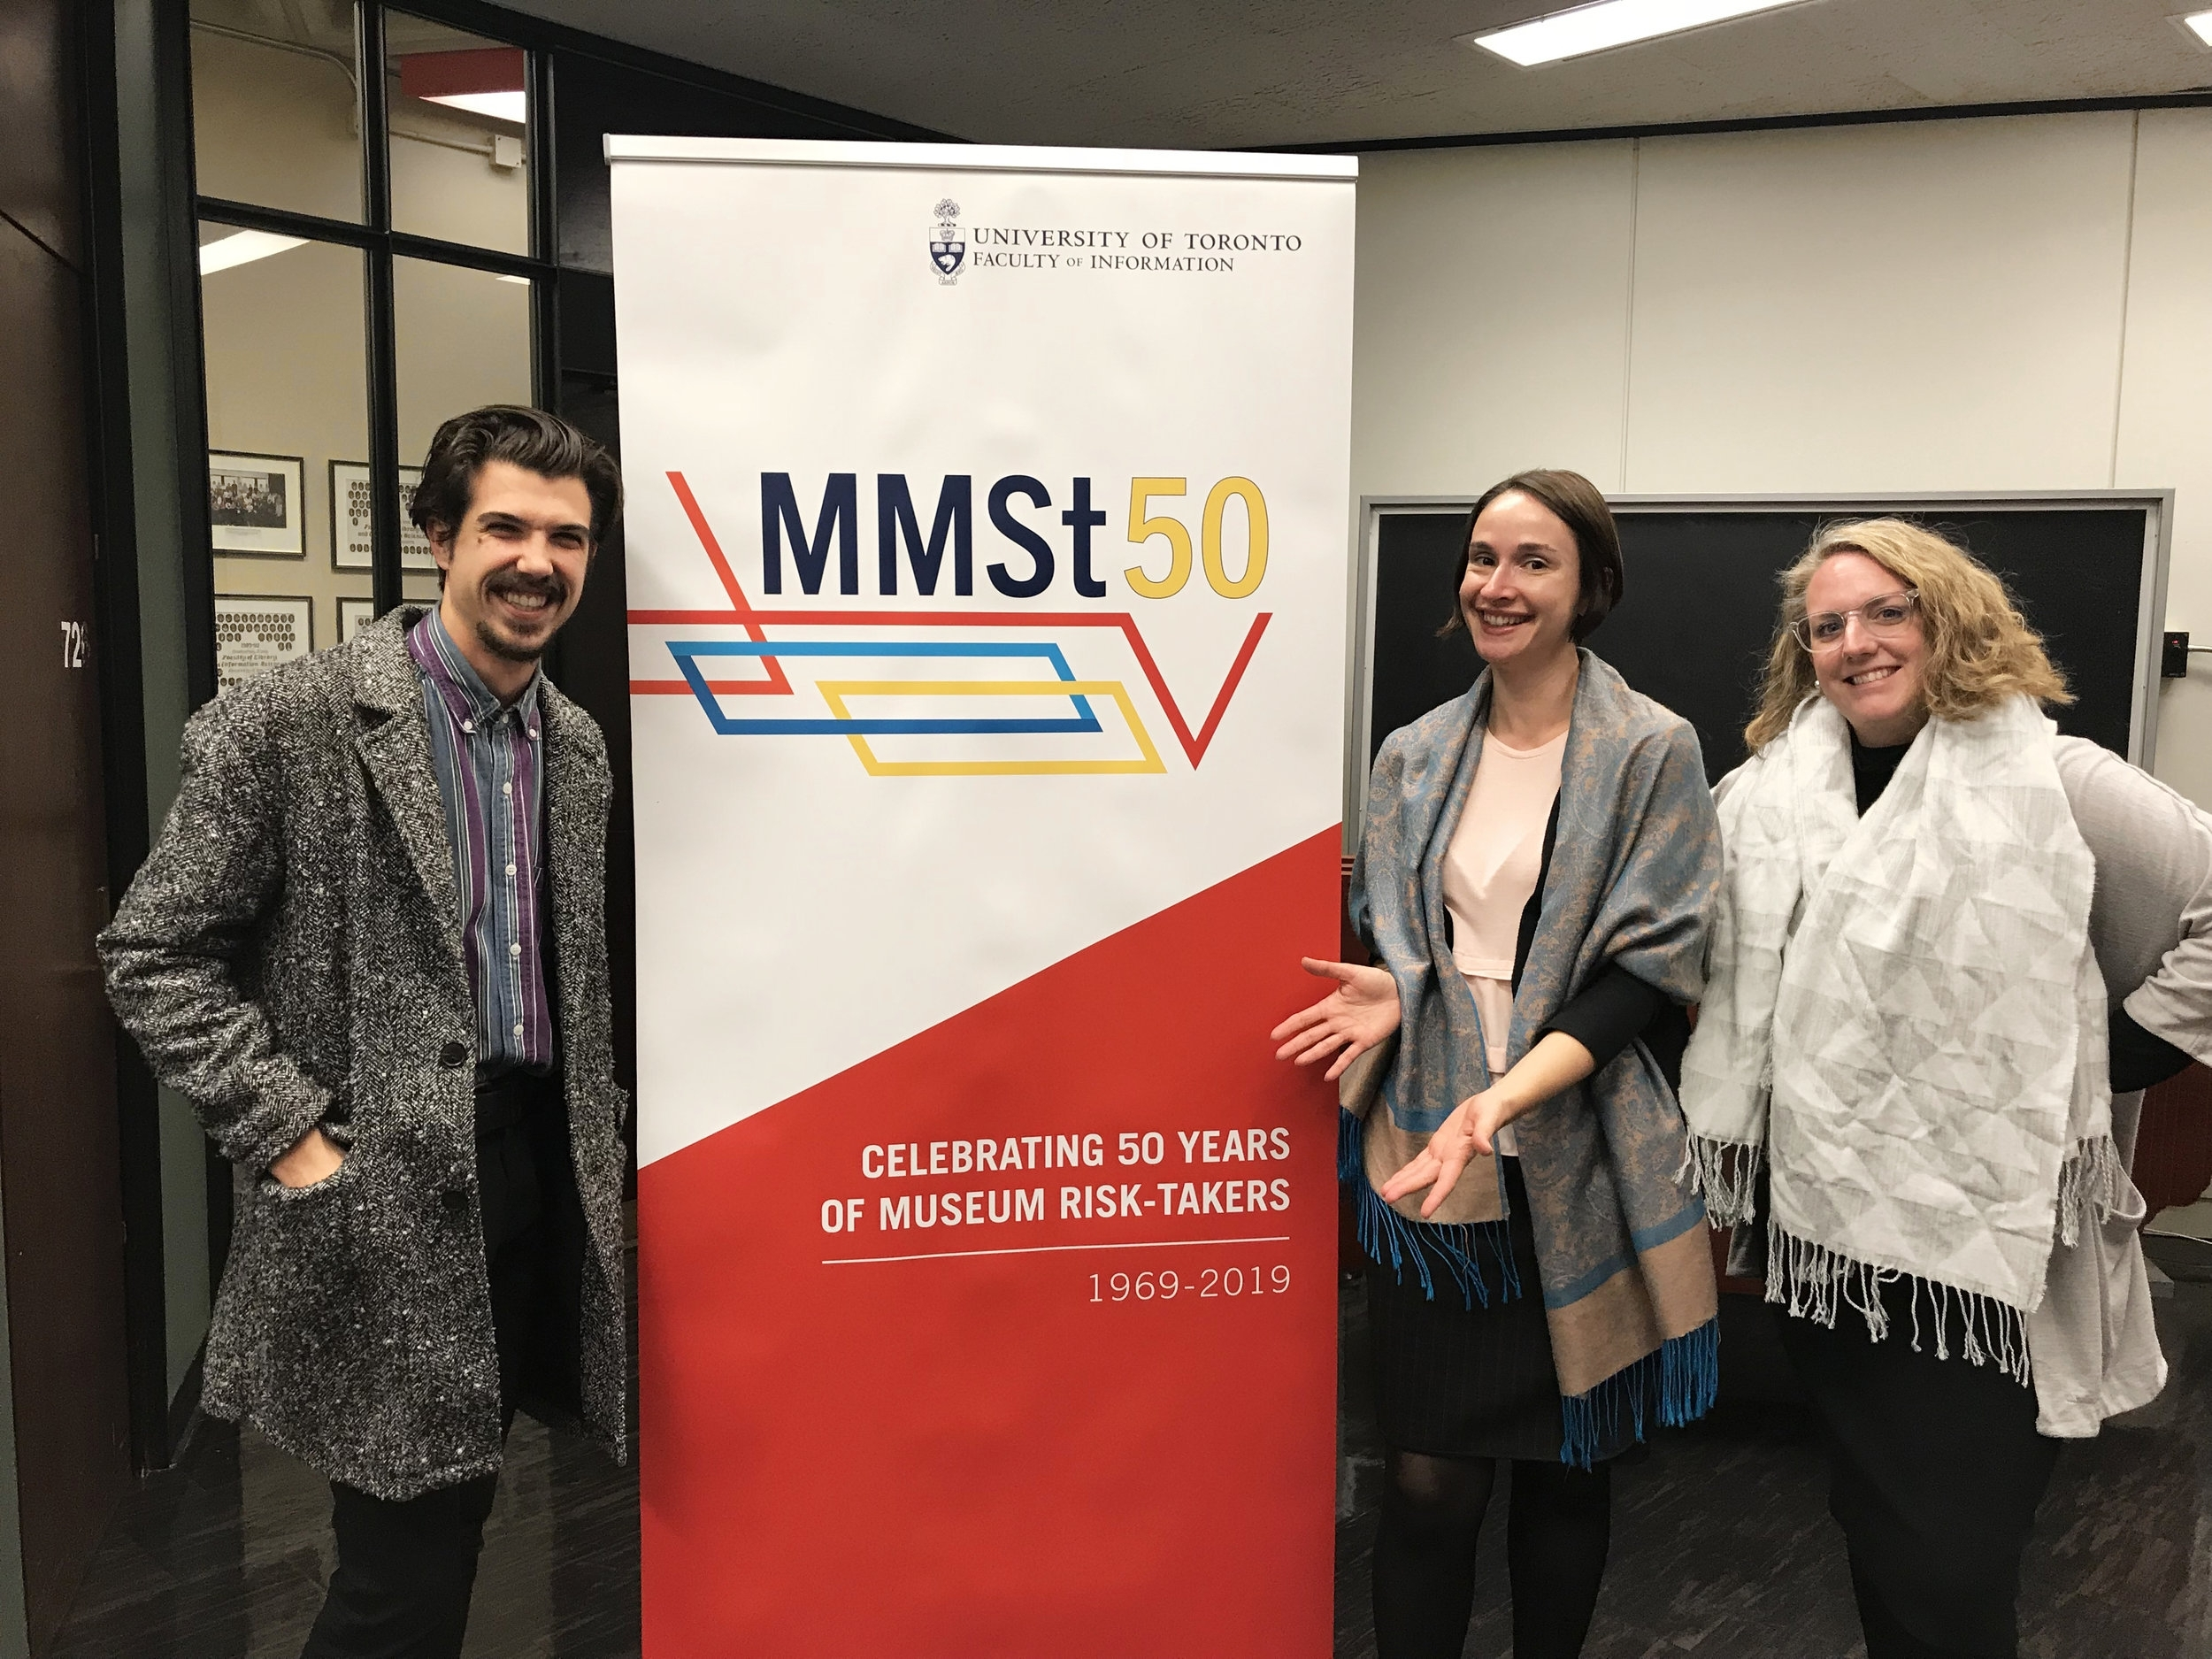 First reveal of the MMSt50 banner with MMSt student Jordan Fee, Prof. Irina Mihalache and MMSt alumna Melissa Smith